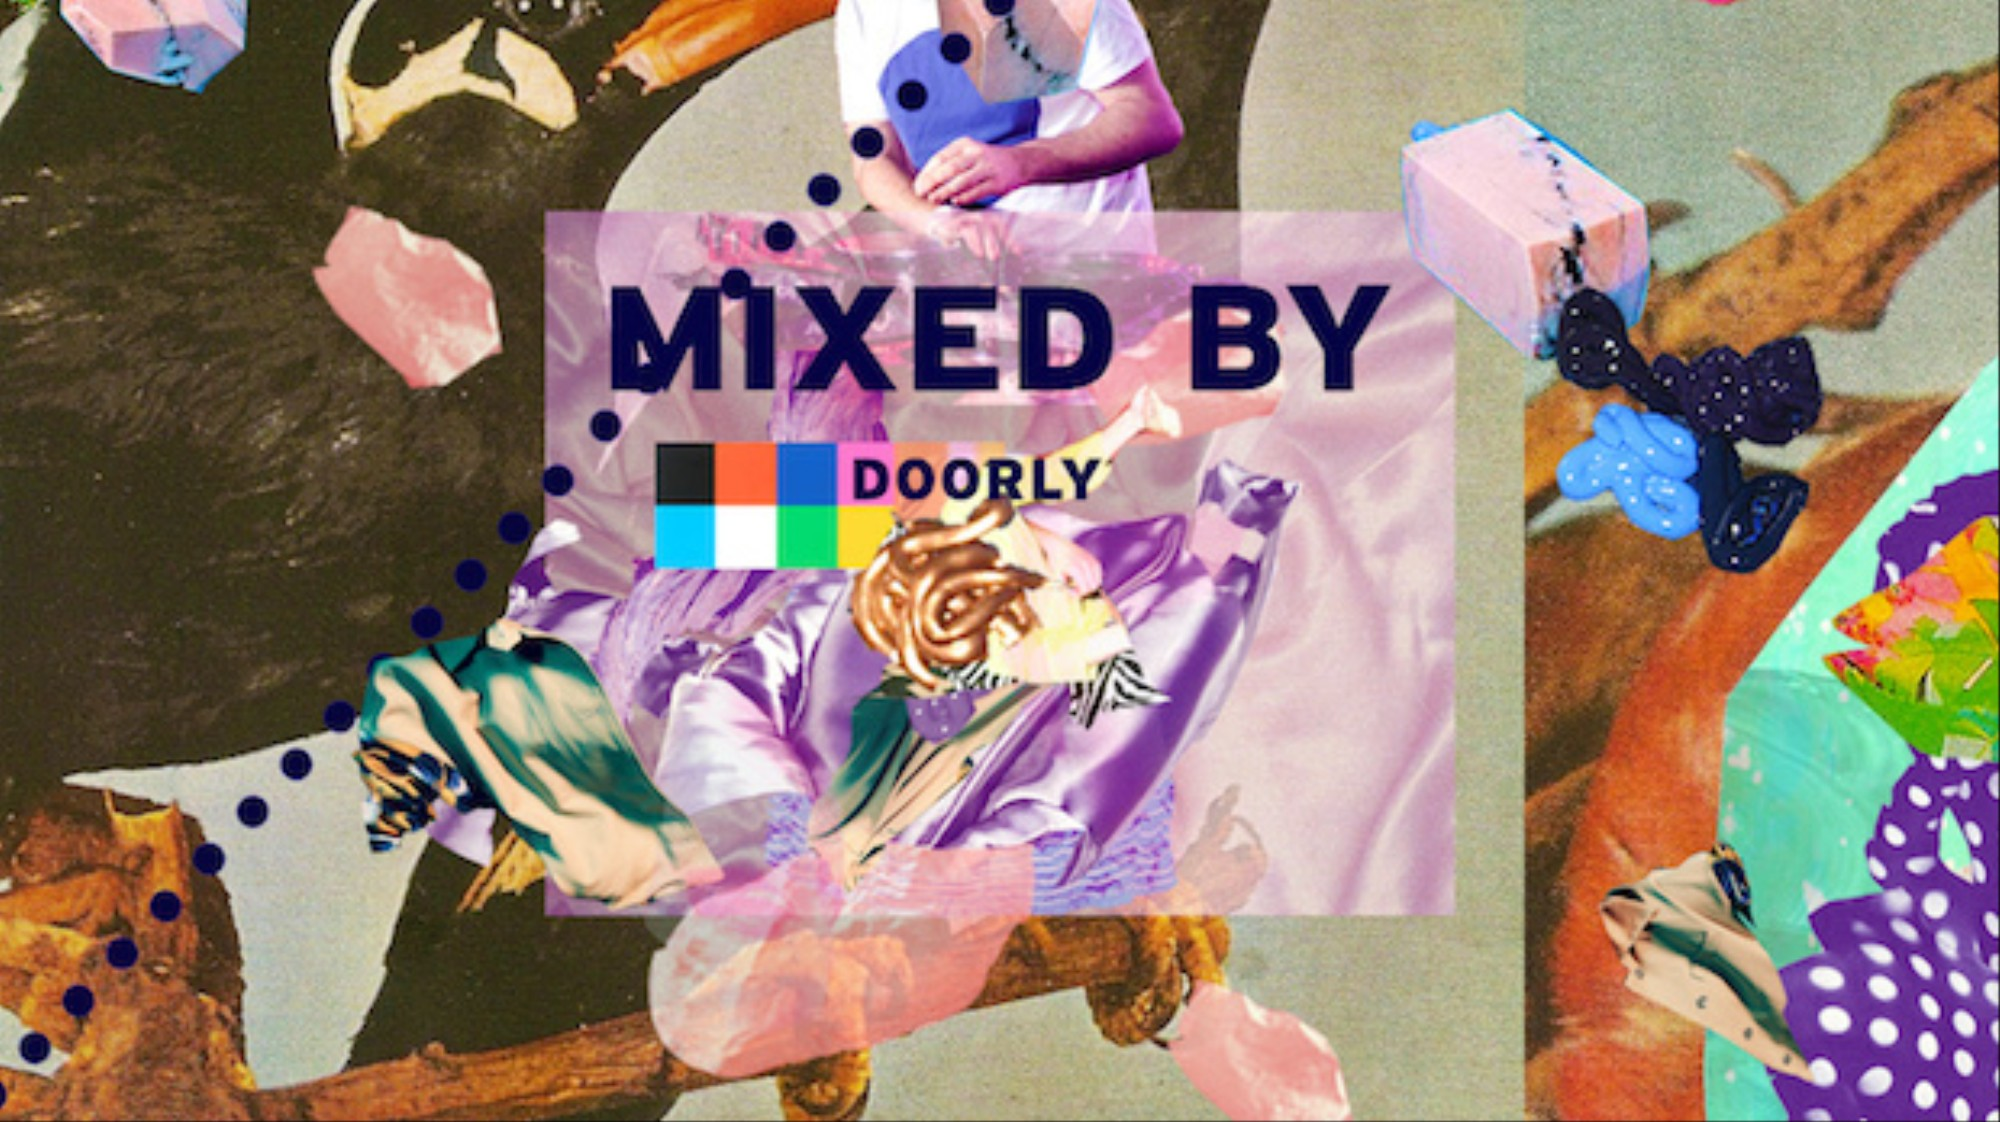 MIXED BY Doorly - VICE